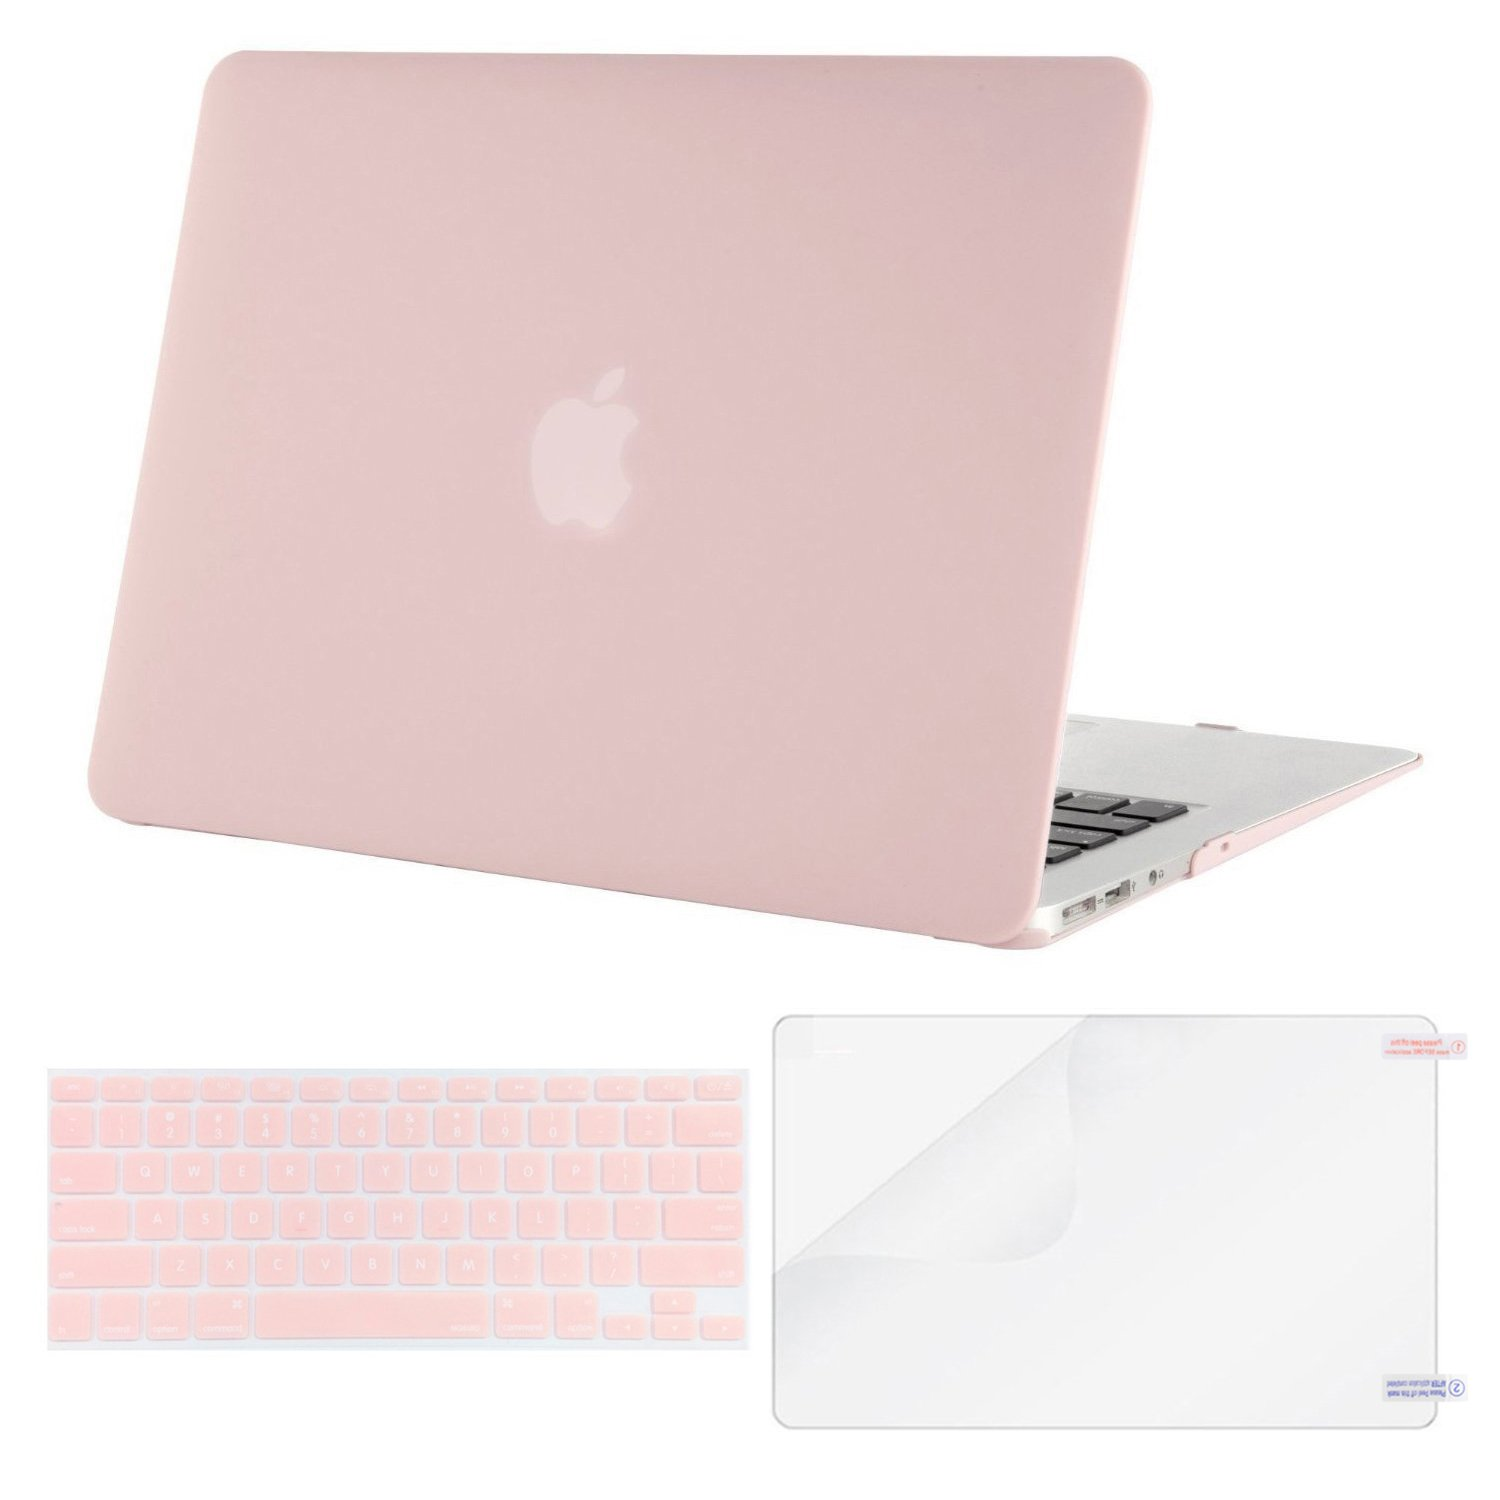 Mosiso Plastic Hard Shell Case with Keyboard Cover with Screen Protector for MacBook Air 11 Inch (Models: A1370 and A1465), Rose Quartz